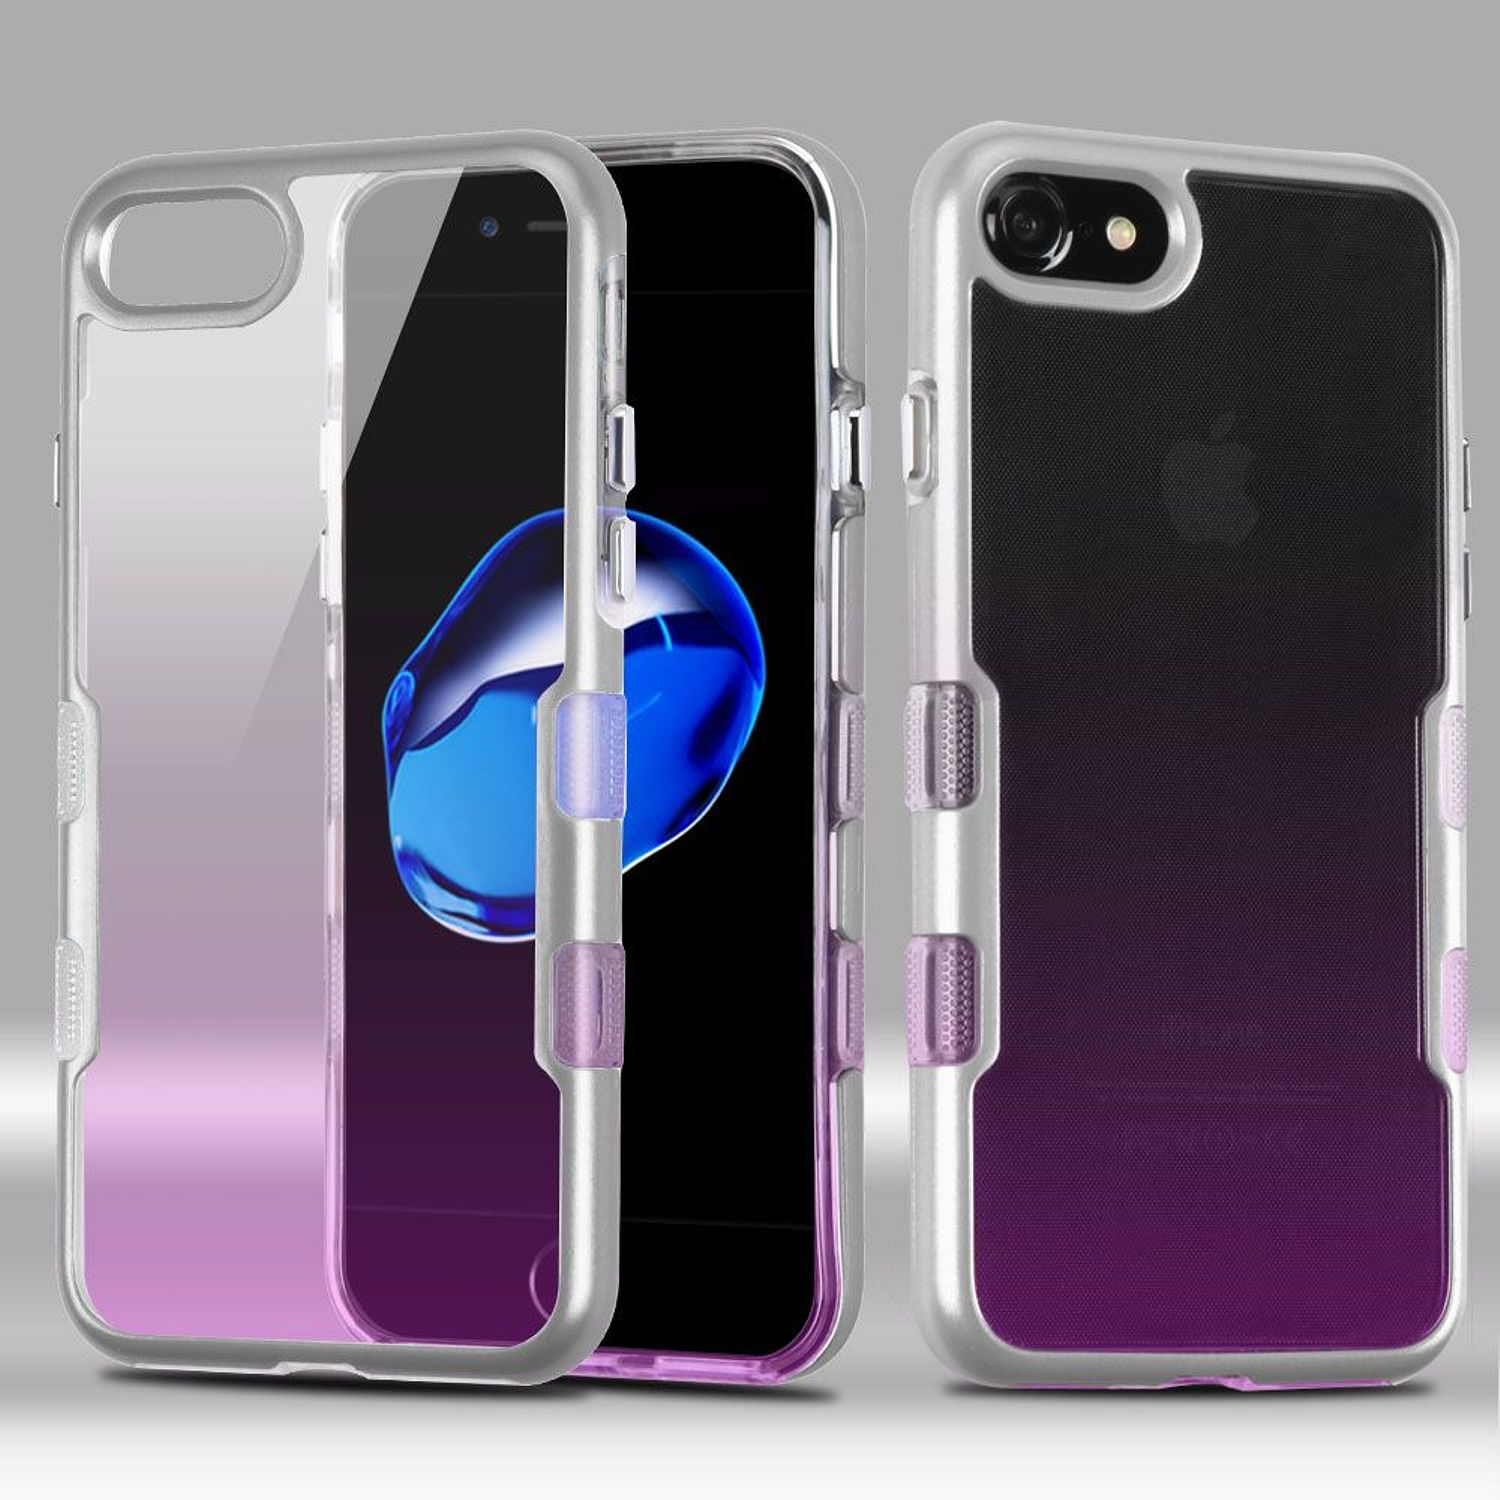 iPhone 8 Case, iPhone 7 Case, by Insten Tuff Dual Layer [Shock Absorbing] Hybrid Crystal Hard Plastic/Soft TPU Rubber Case Cover For Apple iPhone 8 / iPhone 7, Purple/Silver